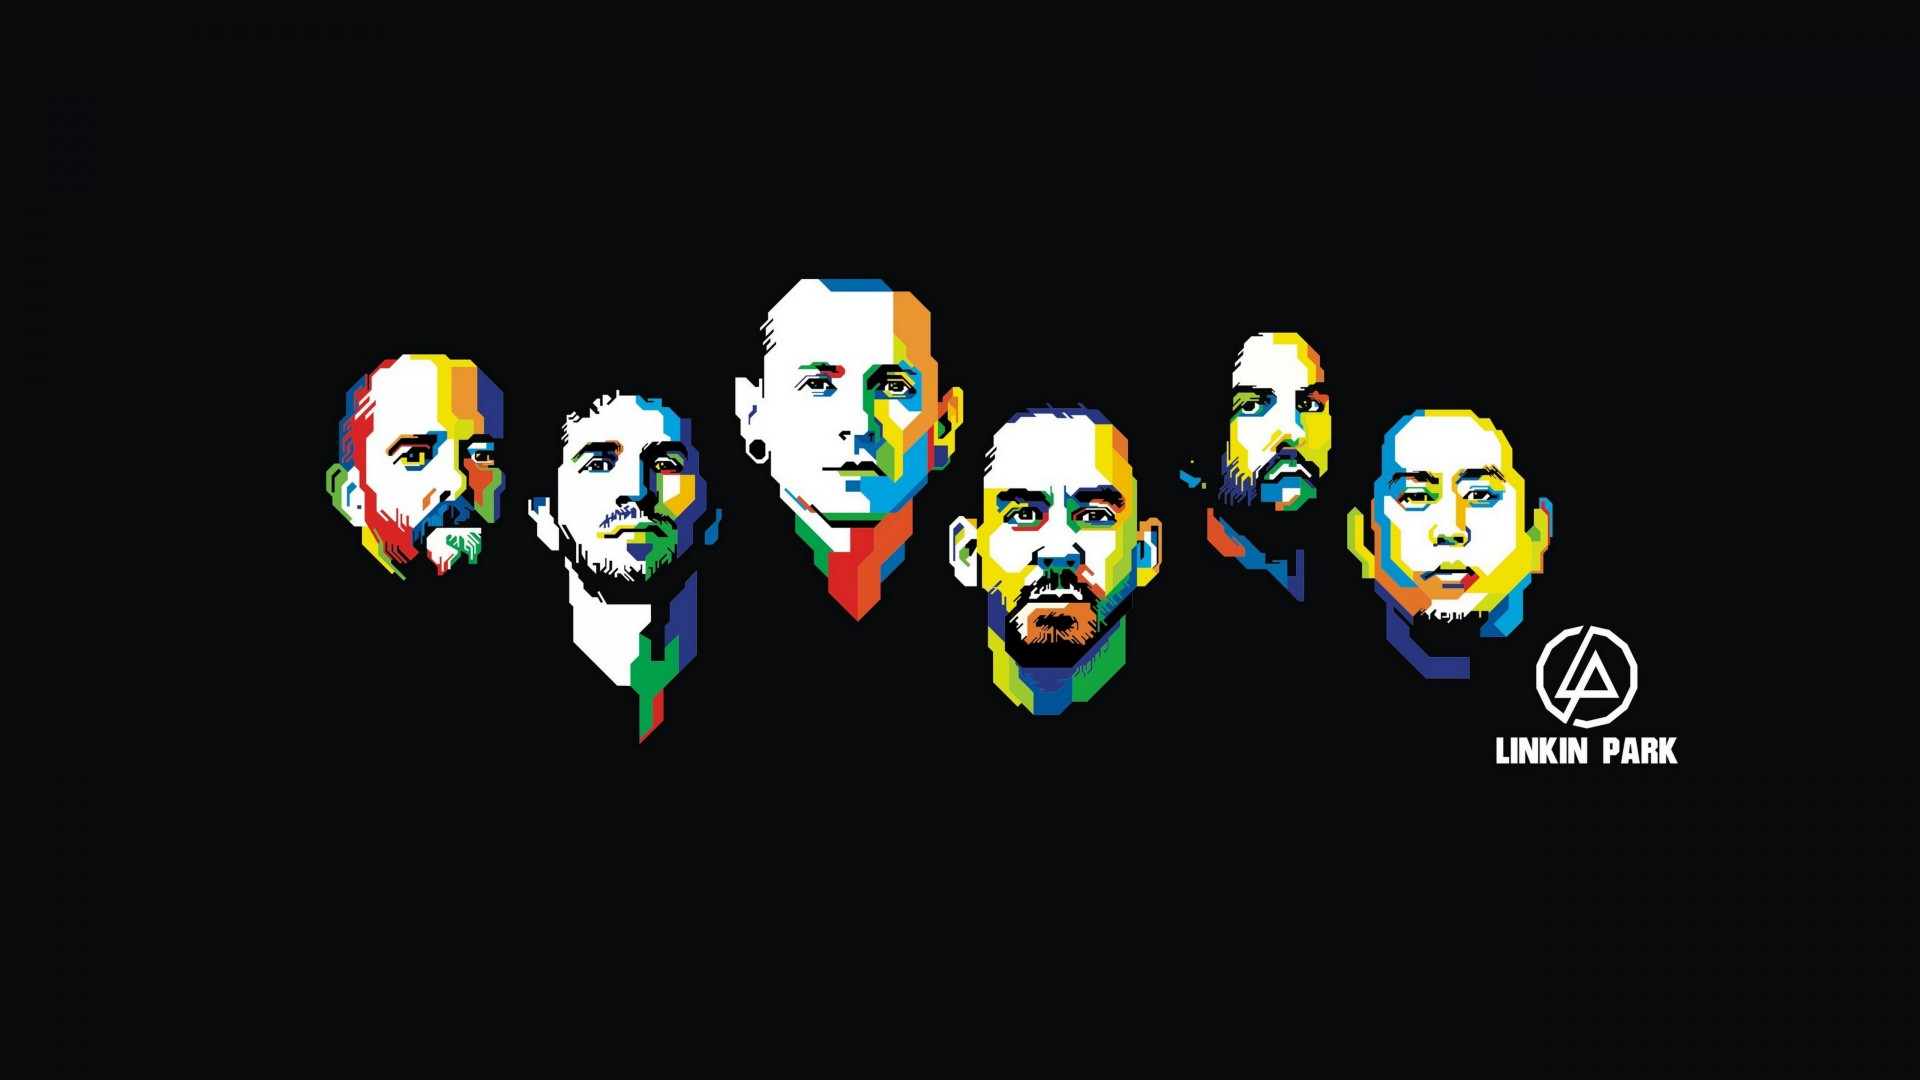 Anime Logo Wallpaper Linkin Park 5k Wallpapers Hd Wallpapers Id 24216